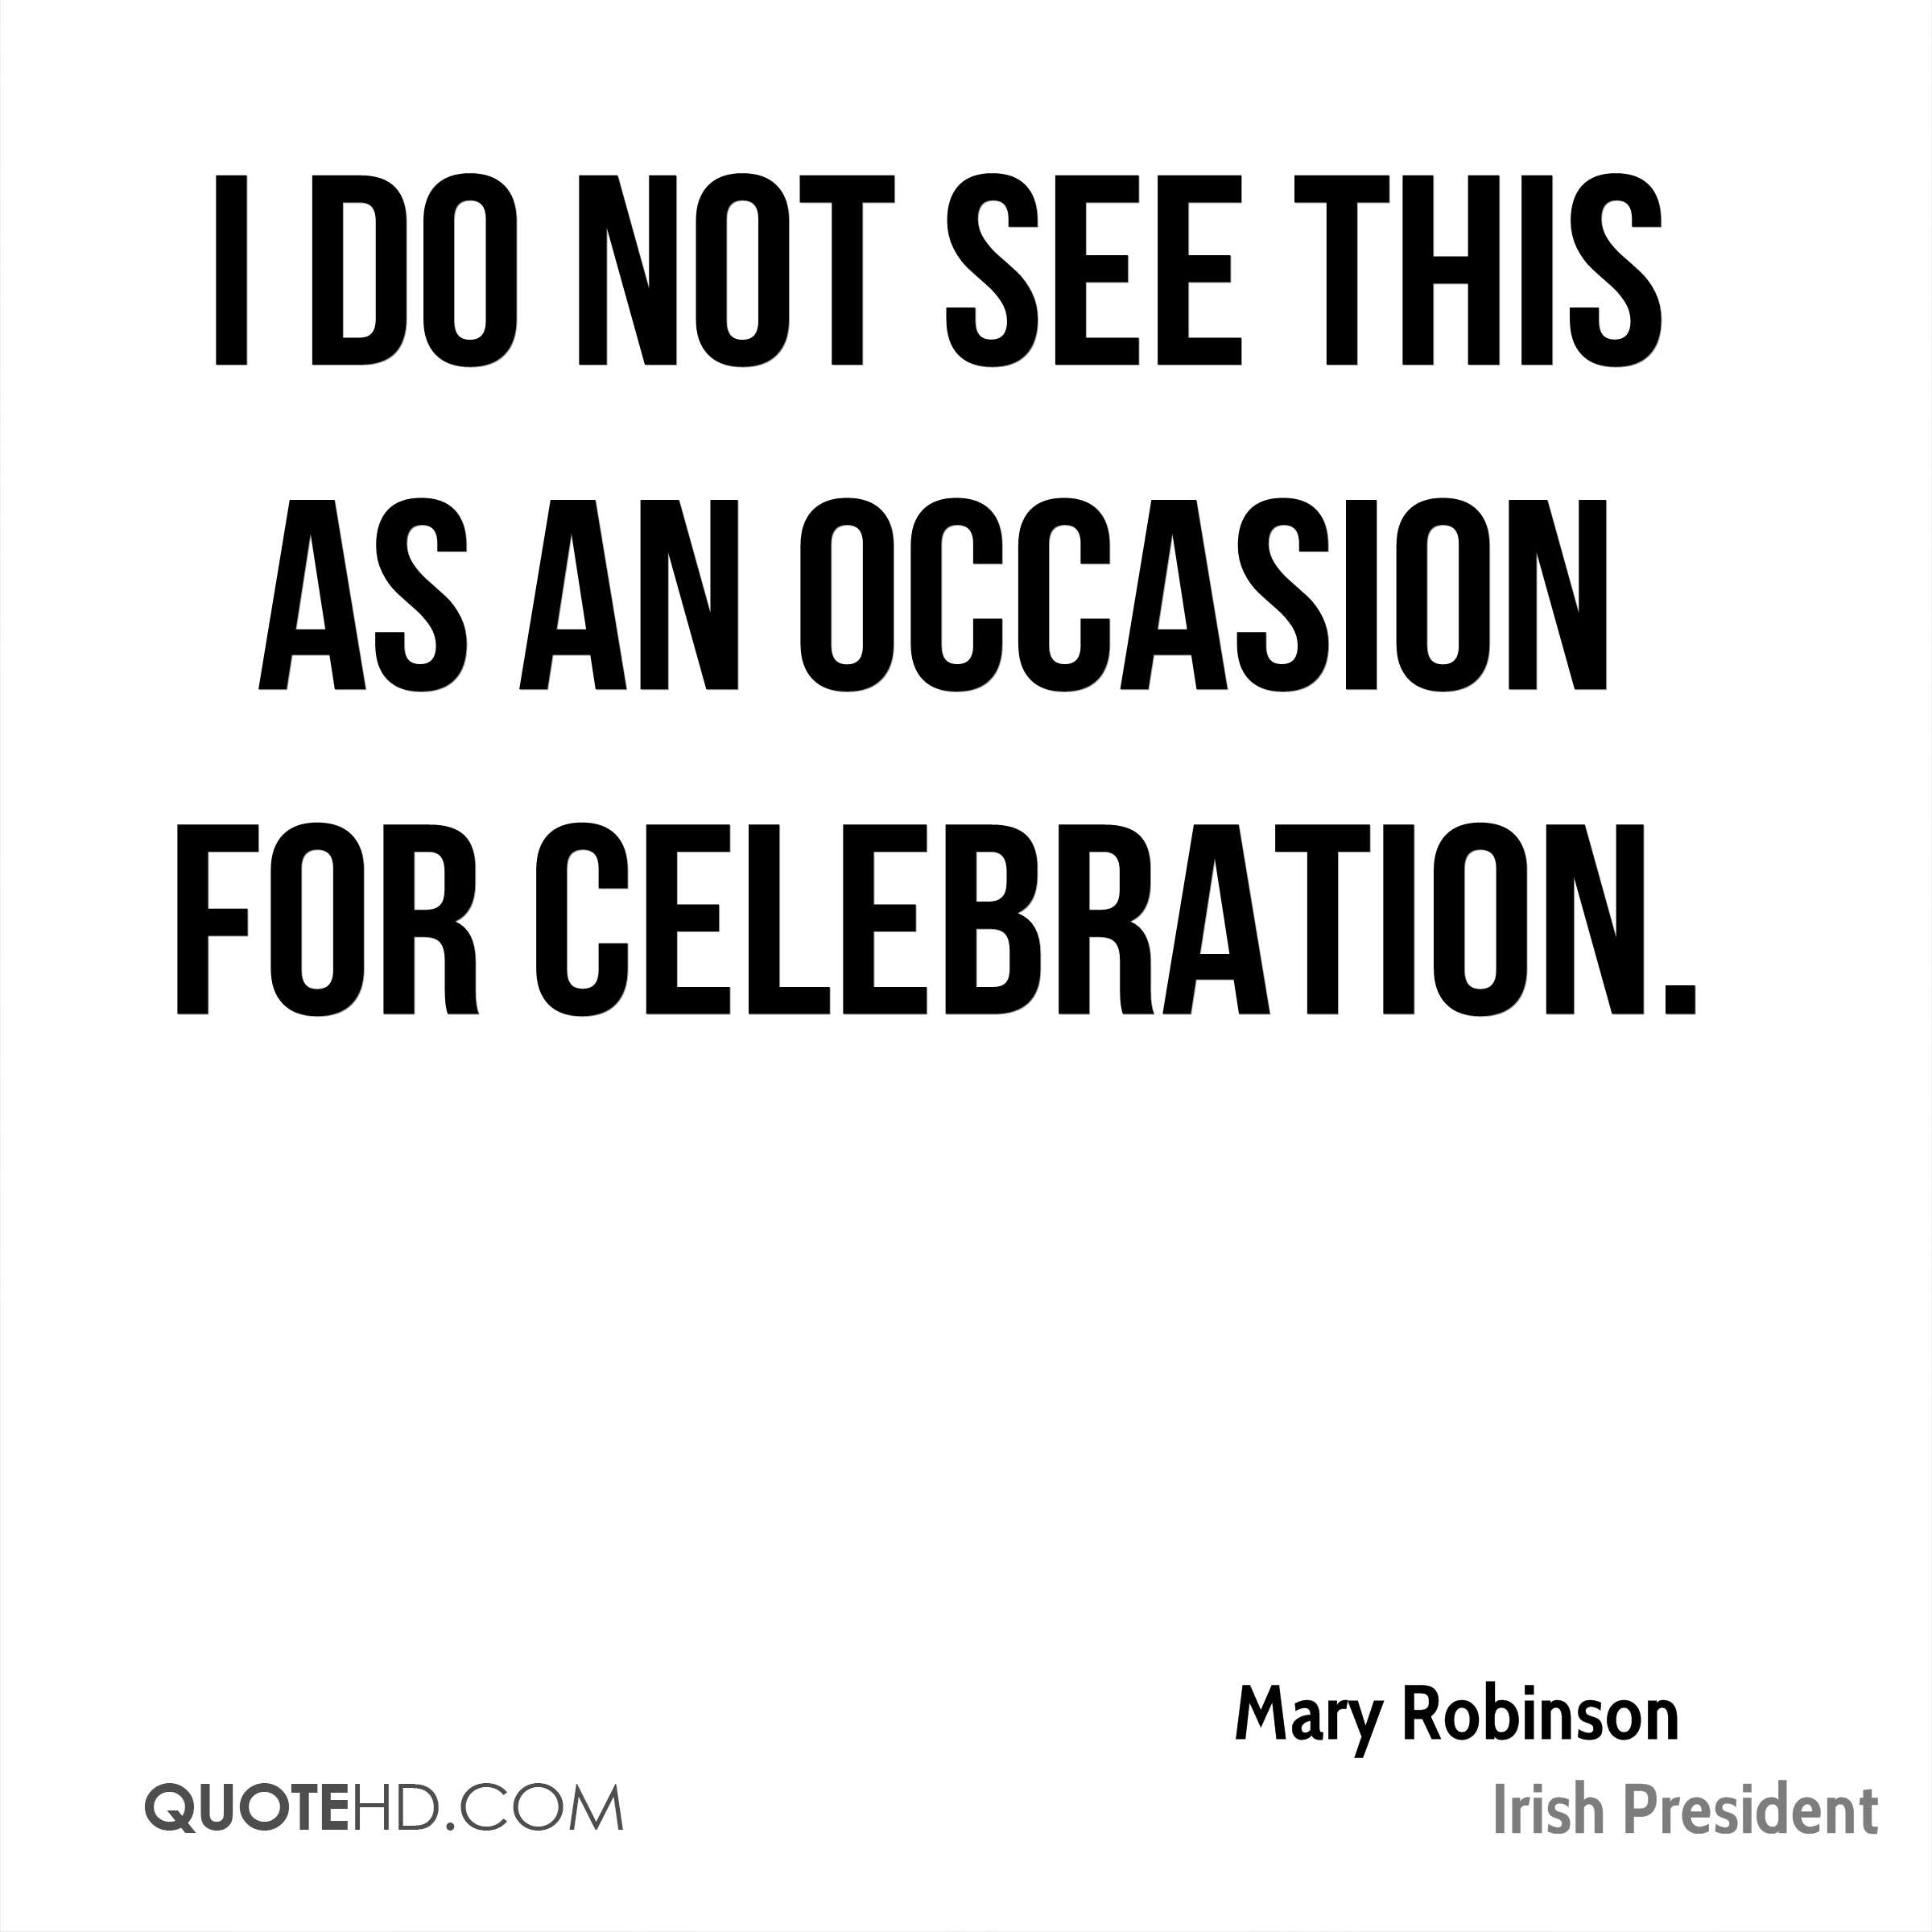 I do not see this as an occasion for celebration.